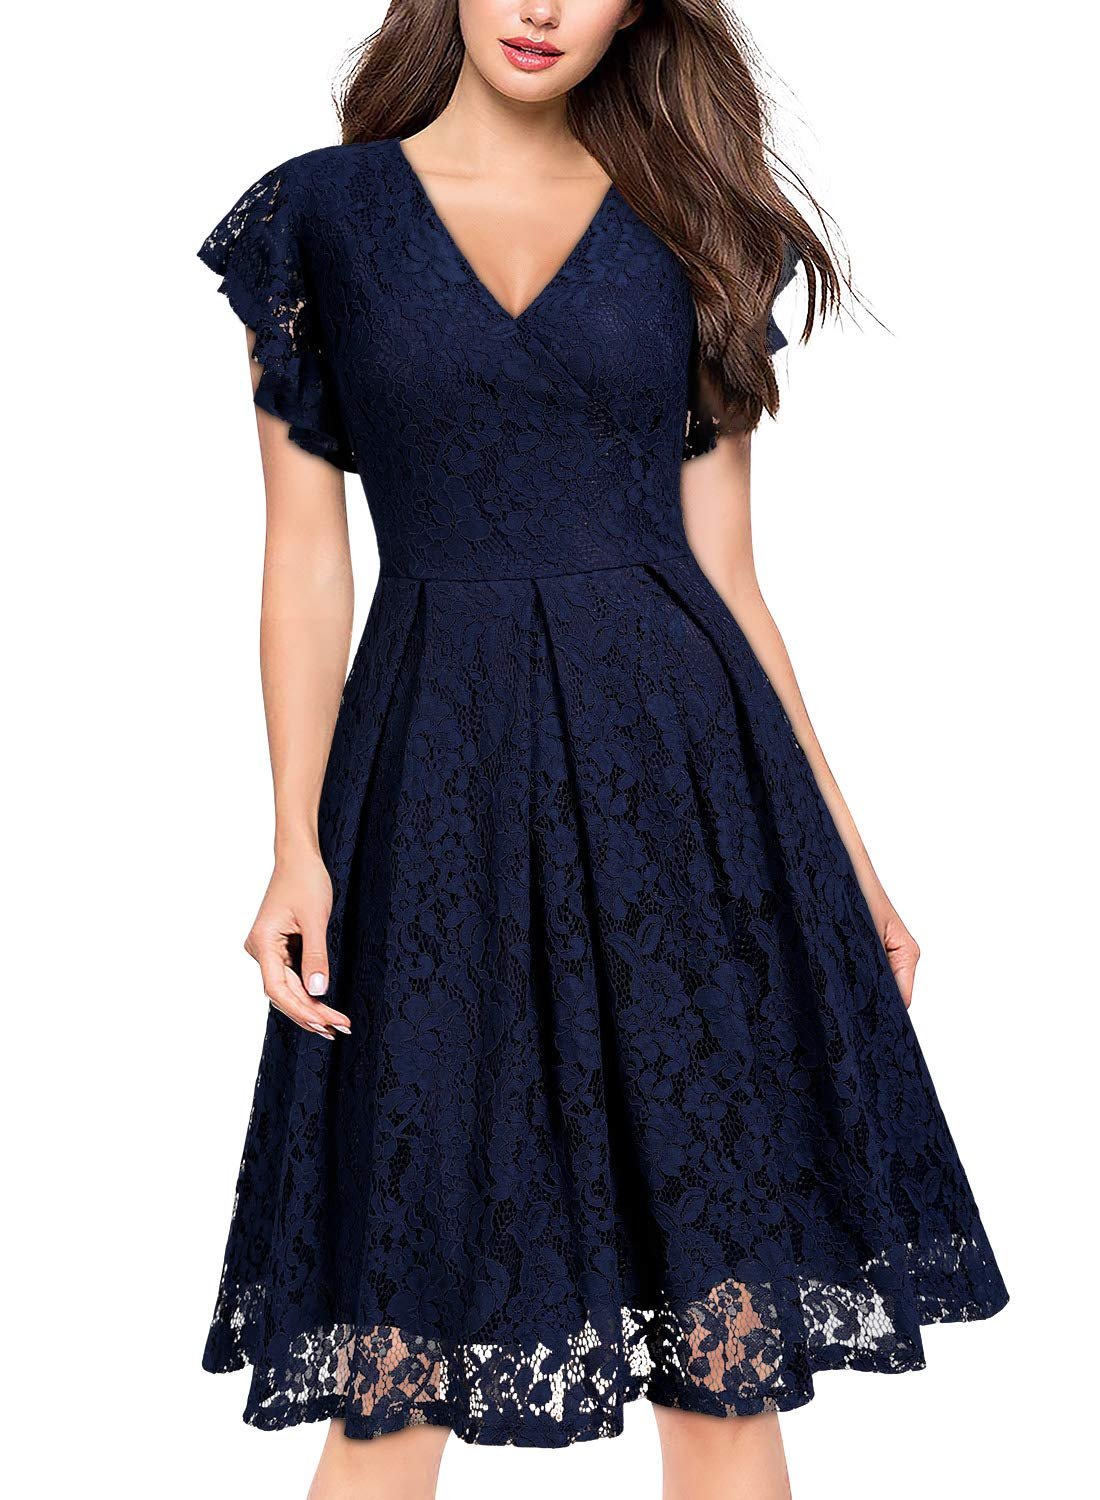 0c91643be2e6 MISSMAY Women's Vintage Floral Lace Ruffle V Neck Cocktail Formal Swing  Dress